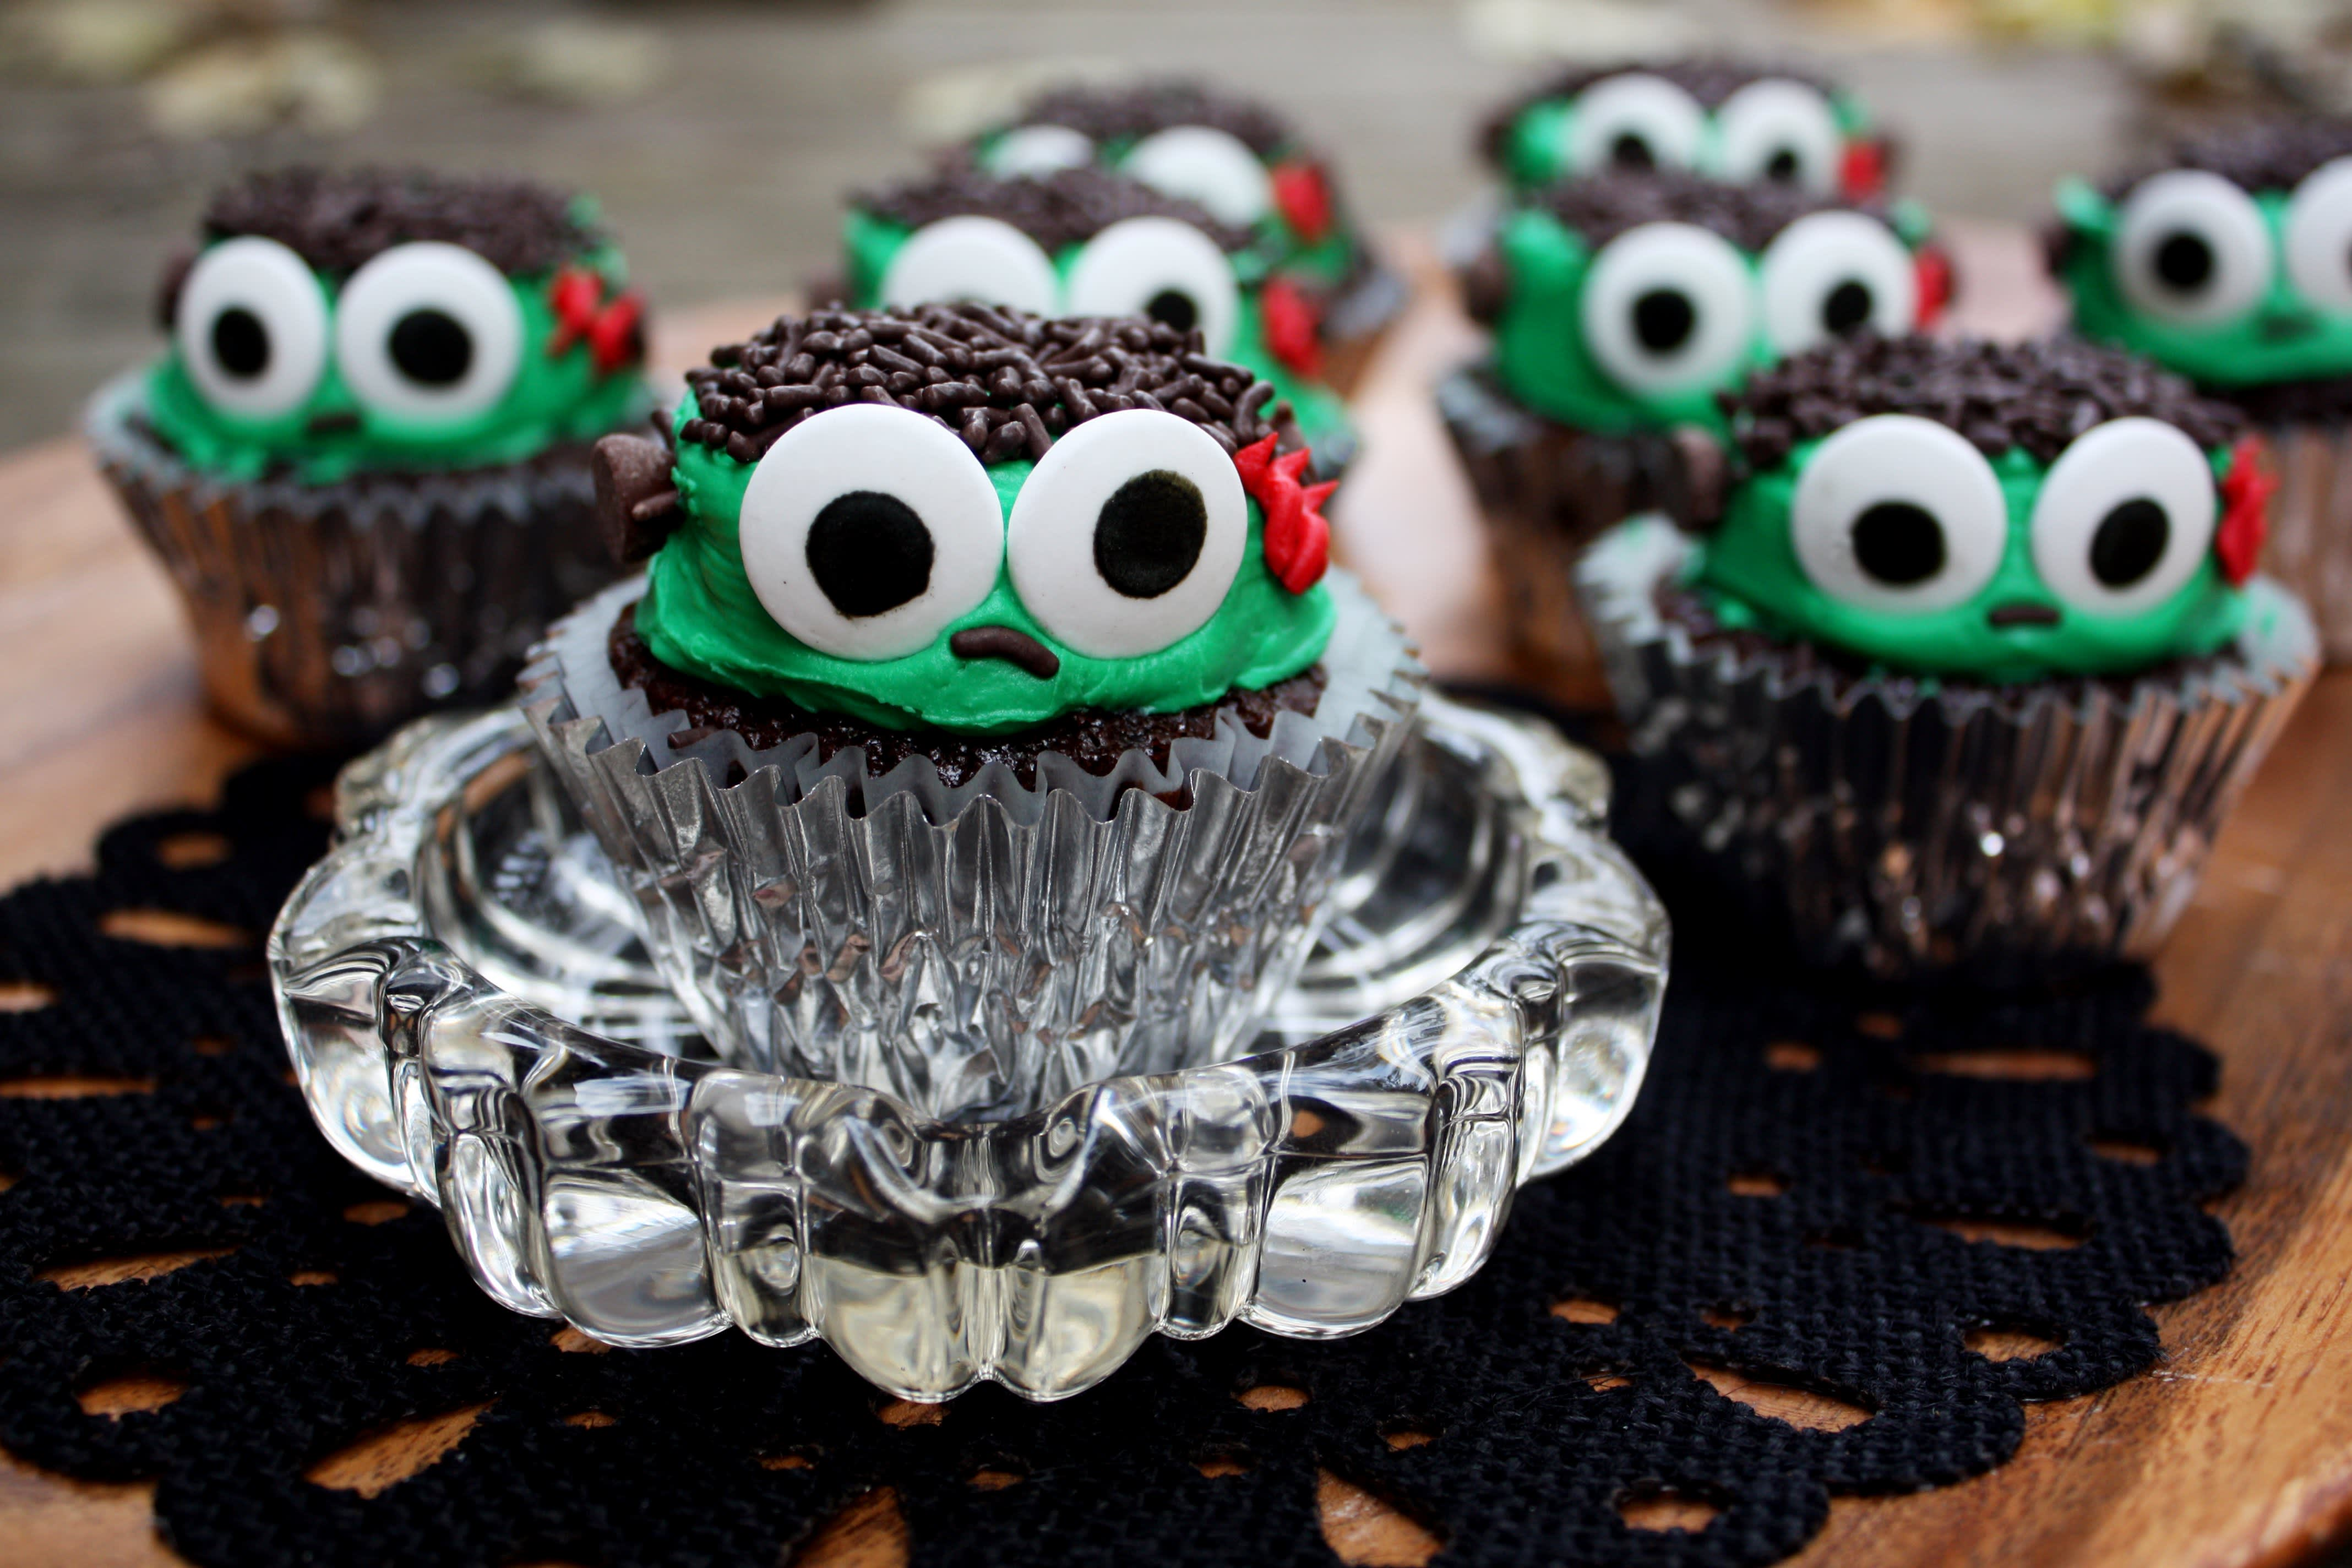 We Tried 7 Popular Halloween Recipes from Pinterest (So You Don't Have To): gallery image 8